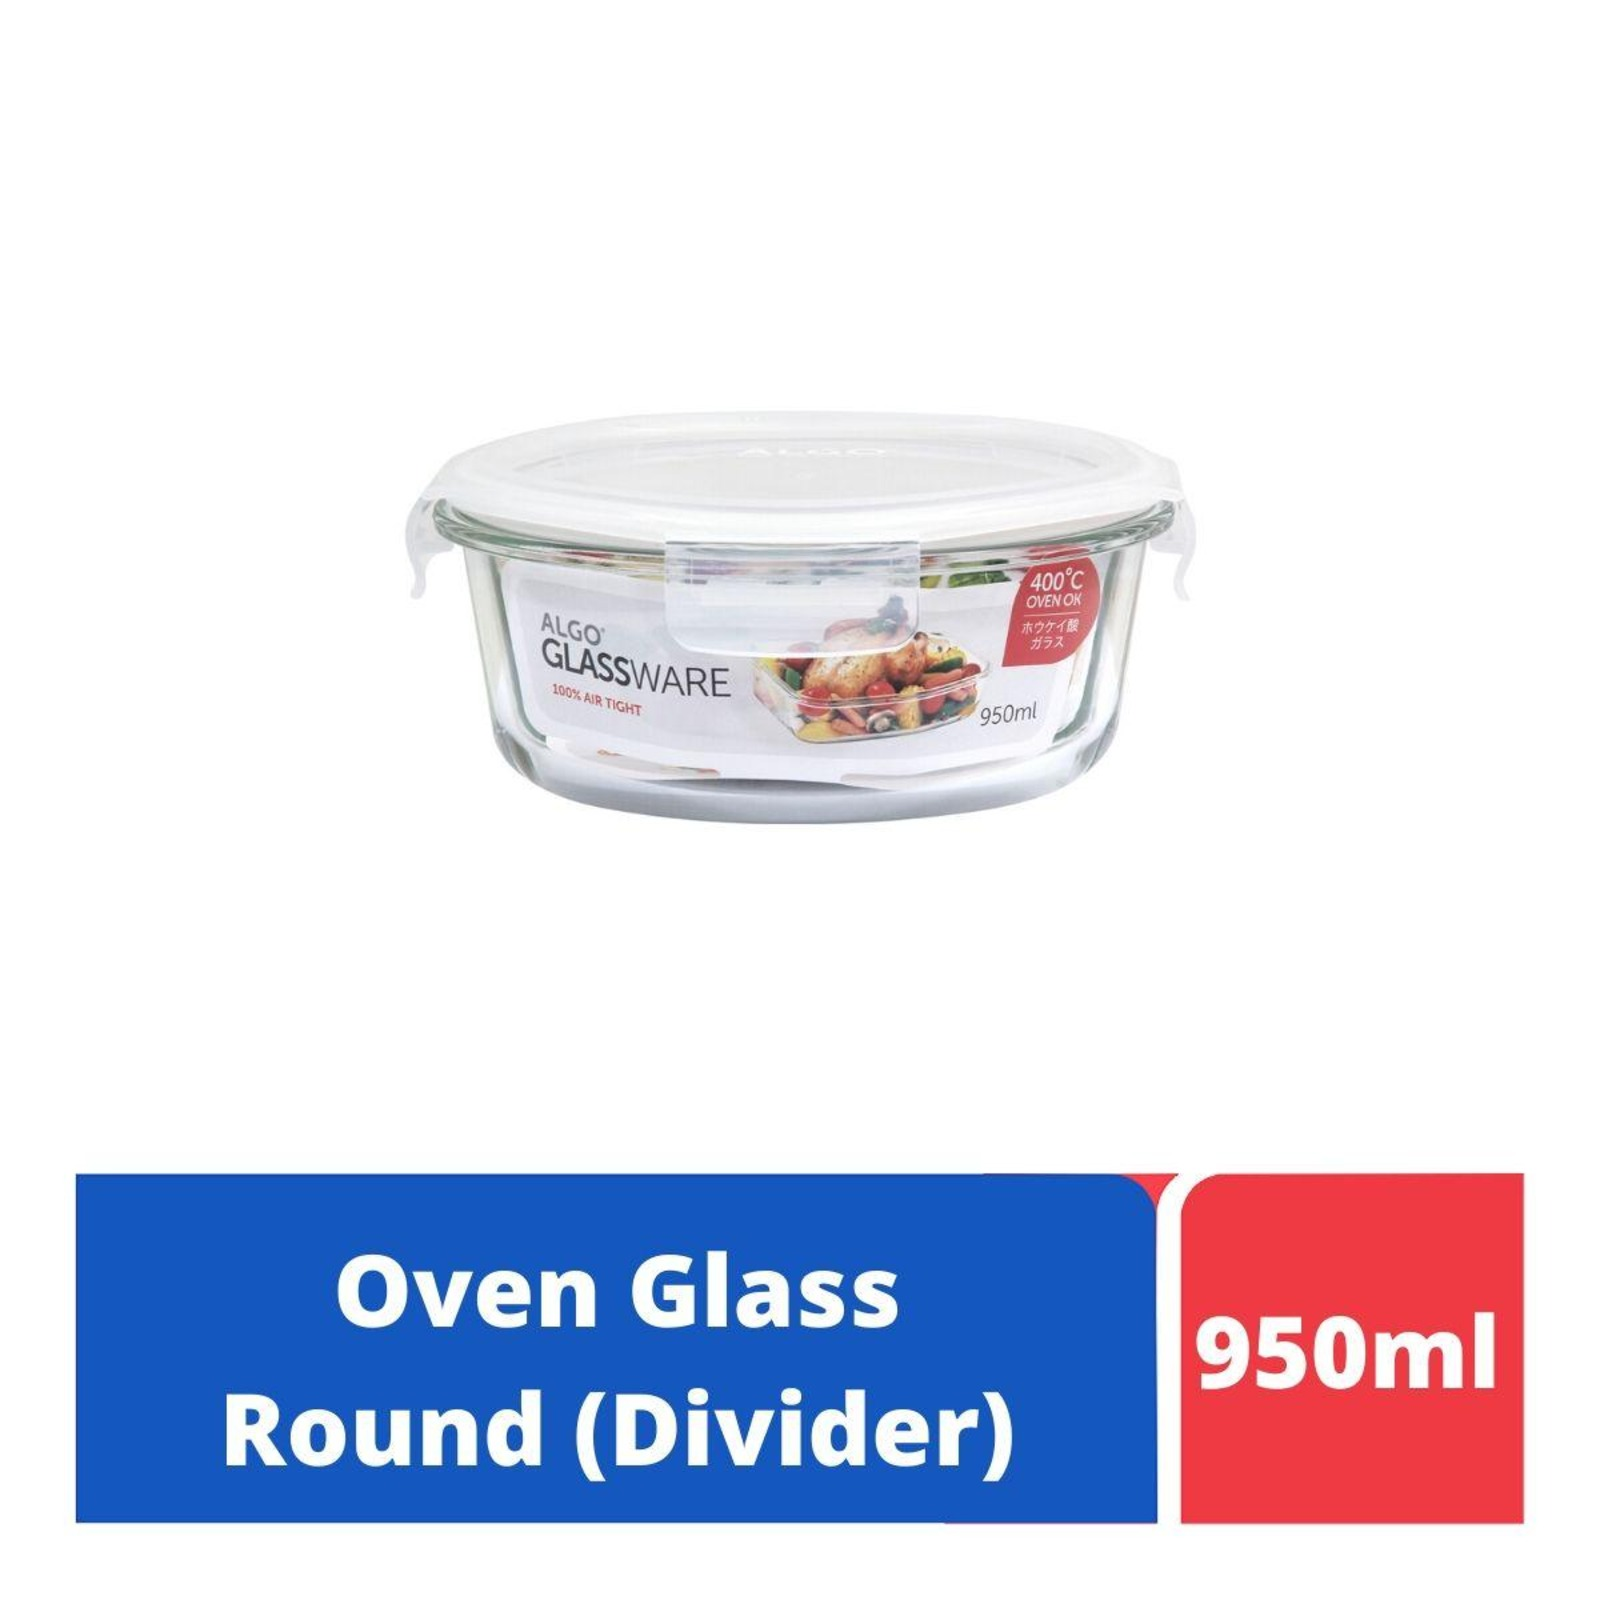 ALGO Glass Food Container with Divider Round 950ml